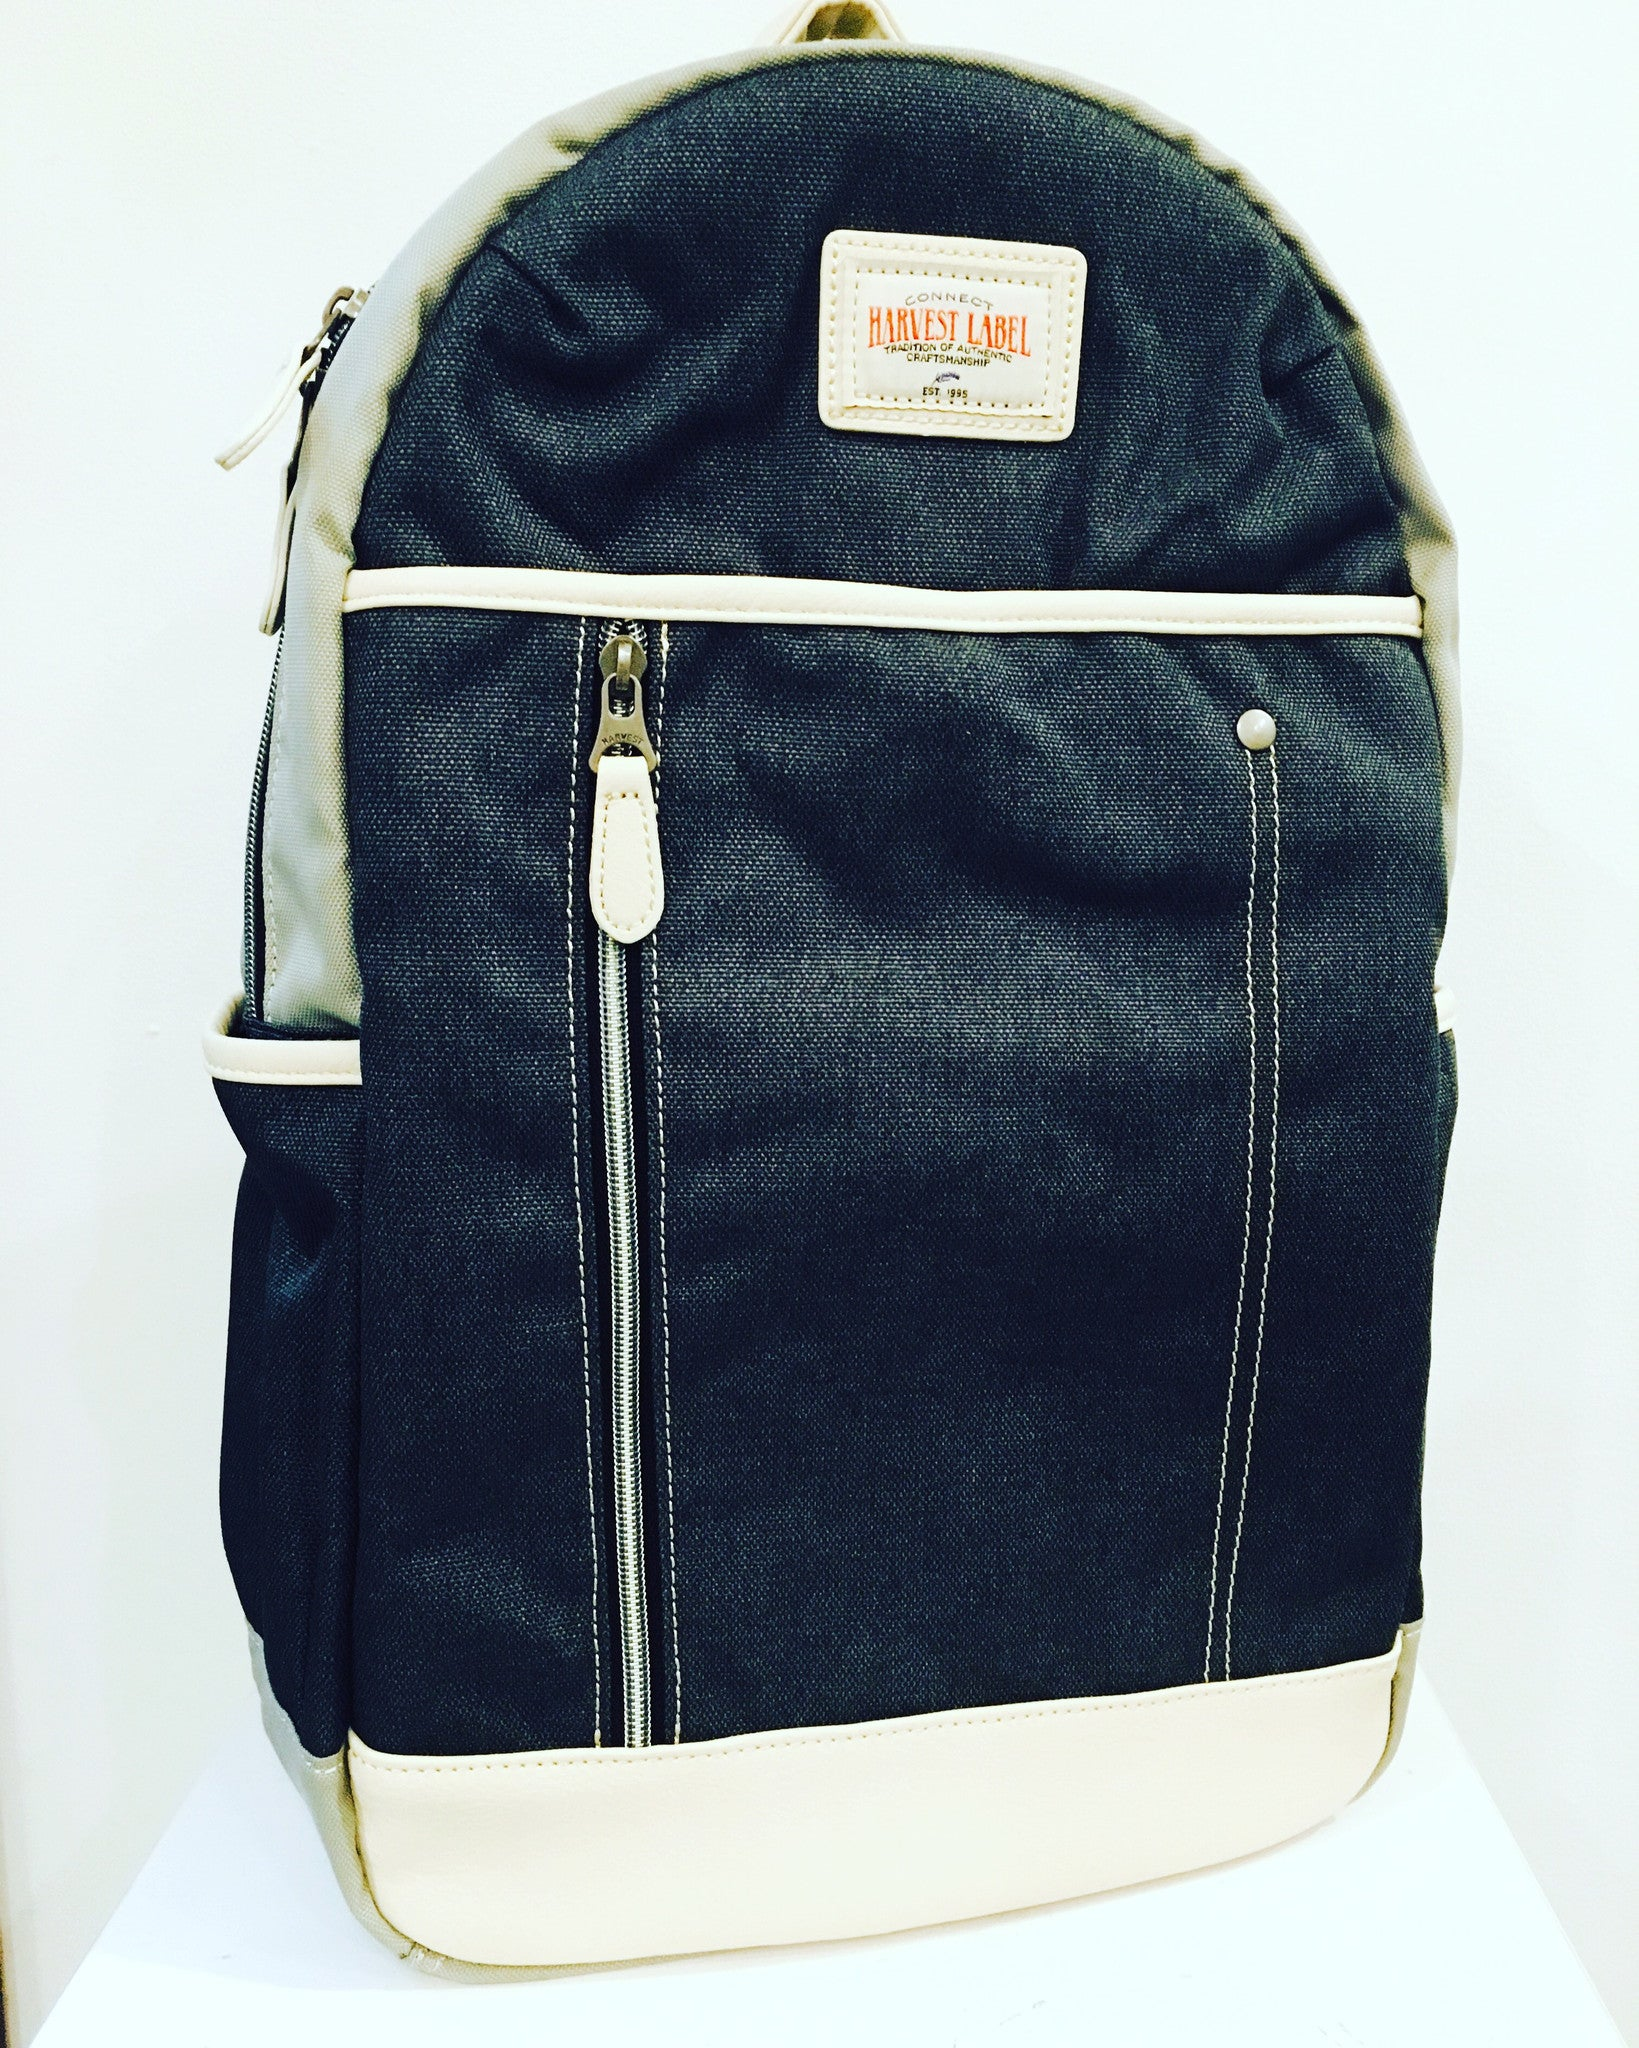 Backpack: Grey and white